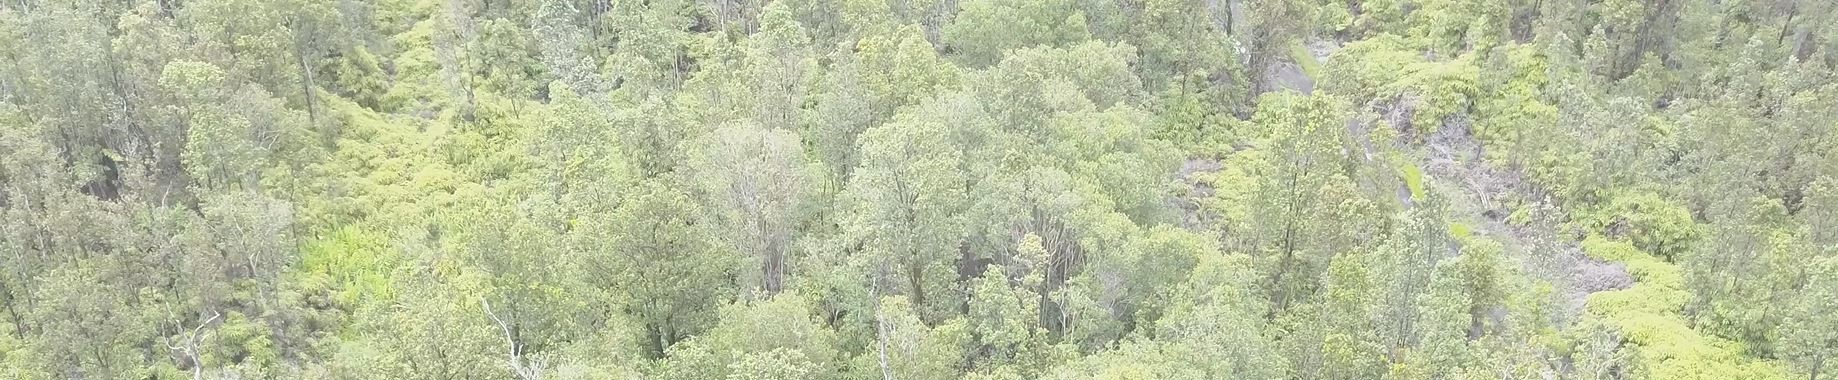 forest aerial2